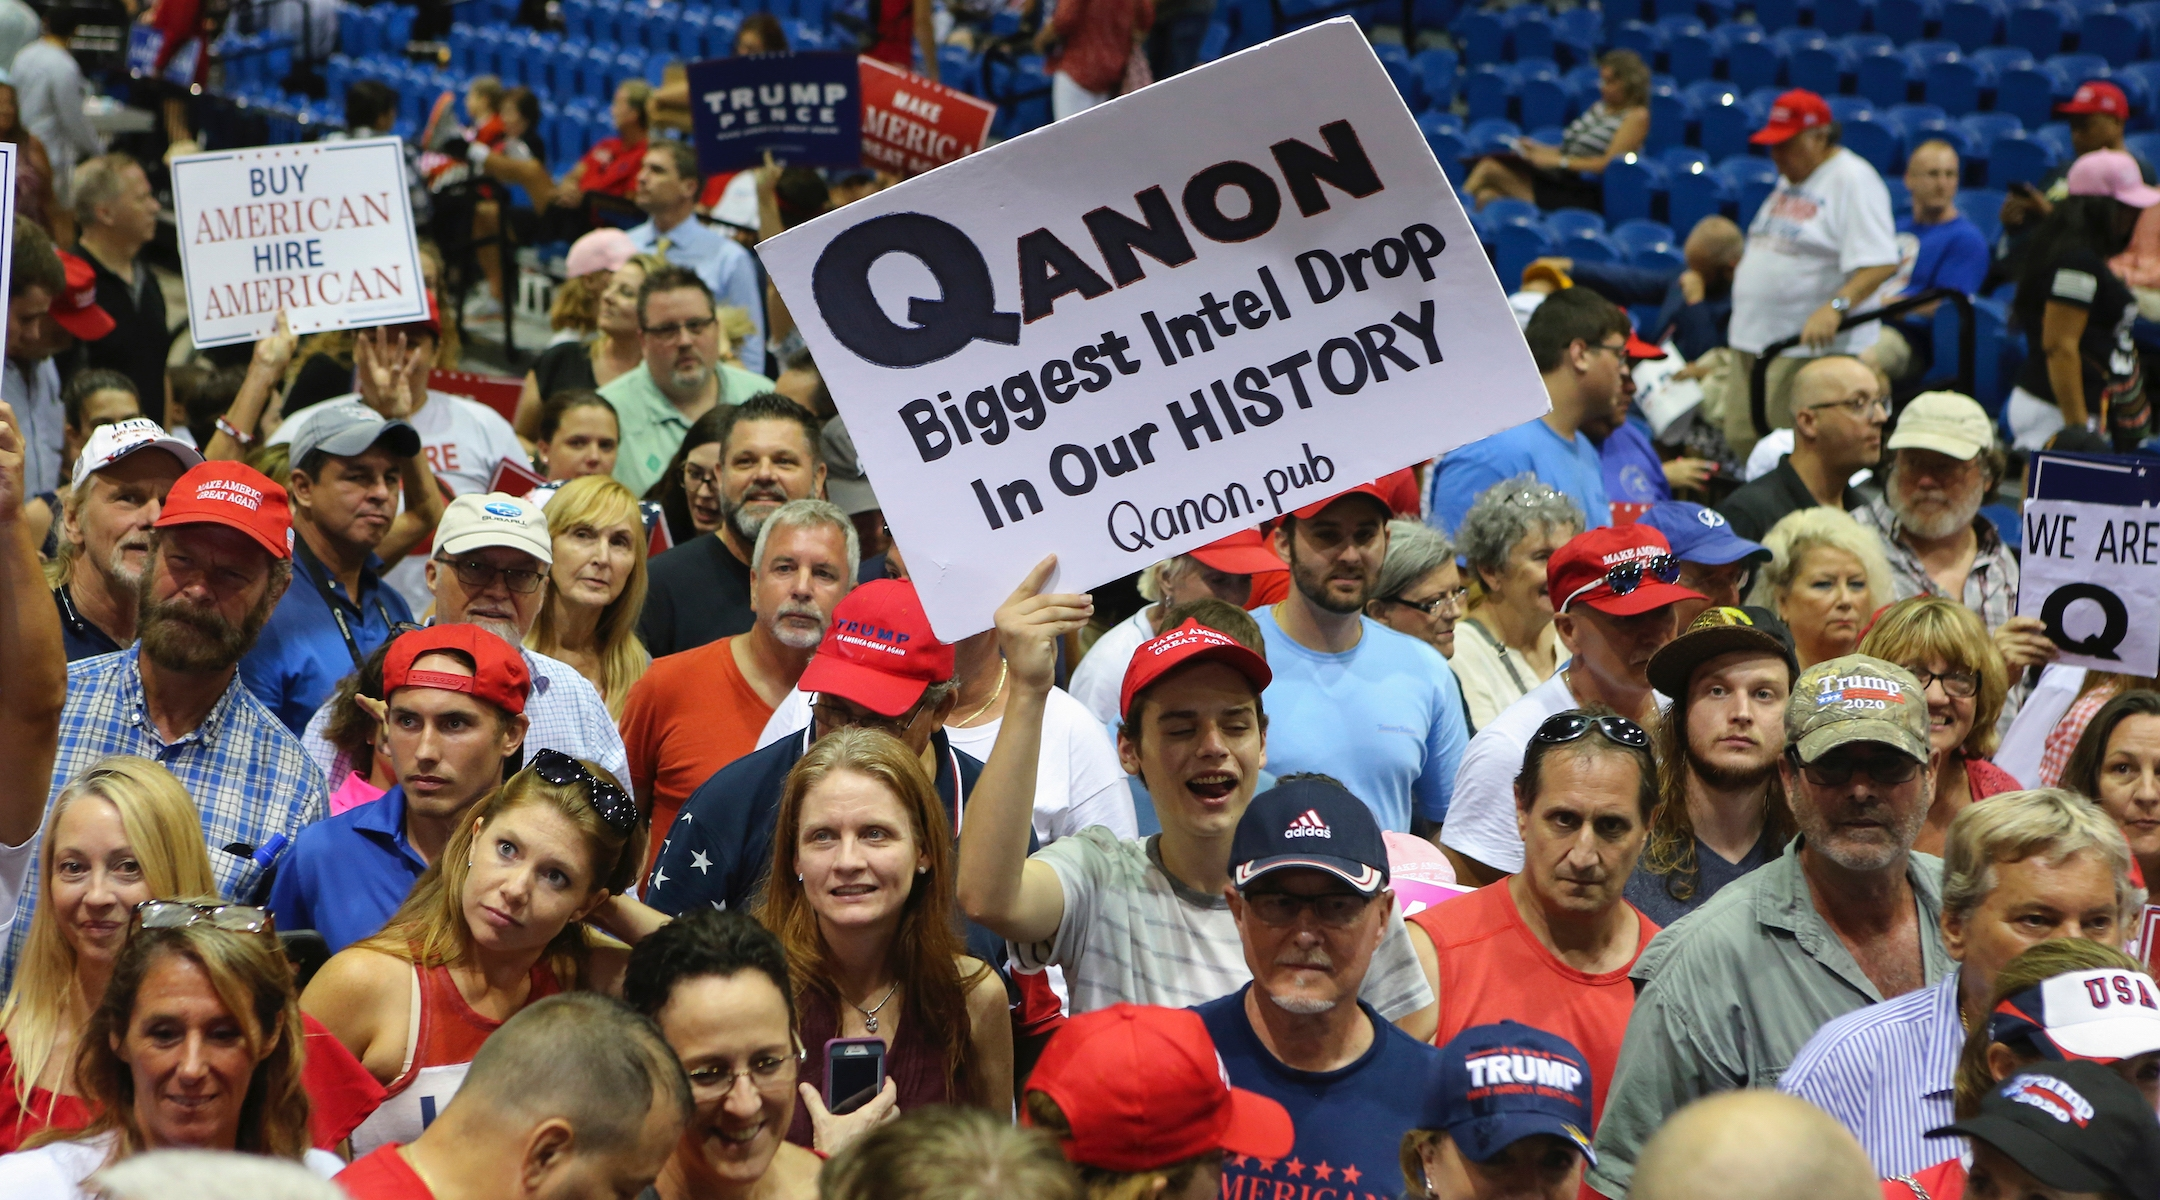 Trump supporters displaying QAnon posters at a 2018 rally in Florida. Recently, Latinos in the state have been inundared with anti-Semitic messages, many relating to the false QAnon conspiracy theory. (Thomas O'Neill/NurPhoto via Getty Images)